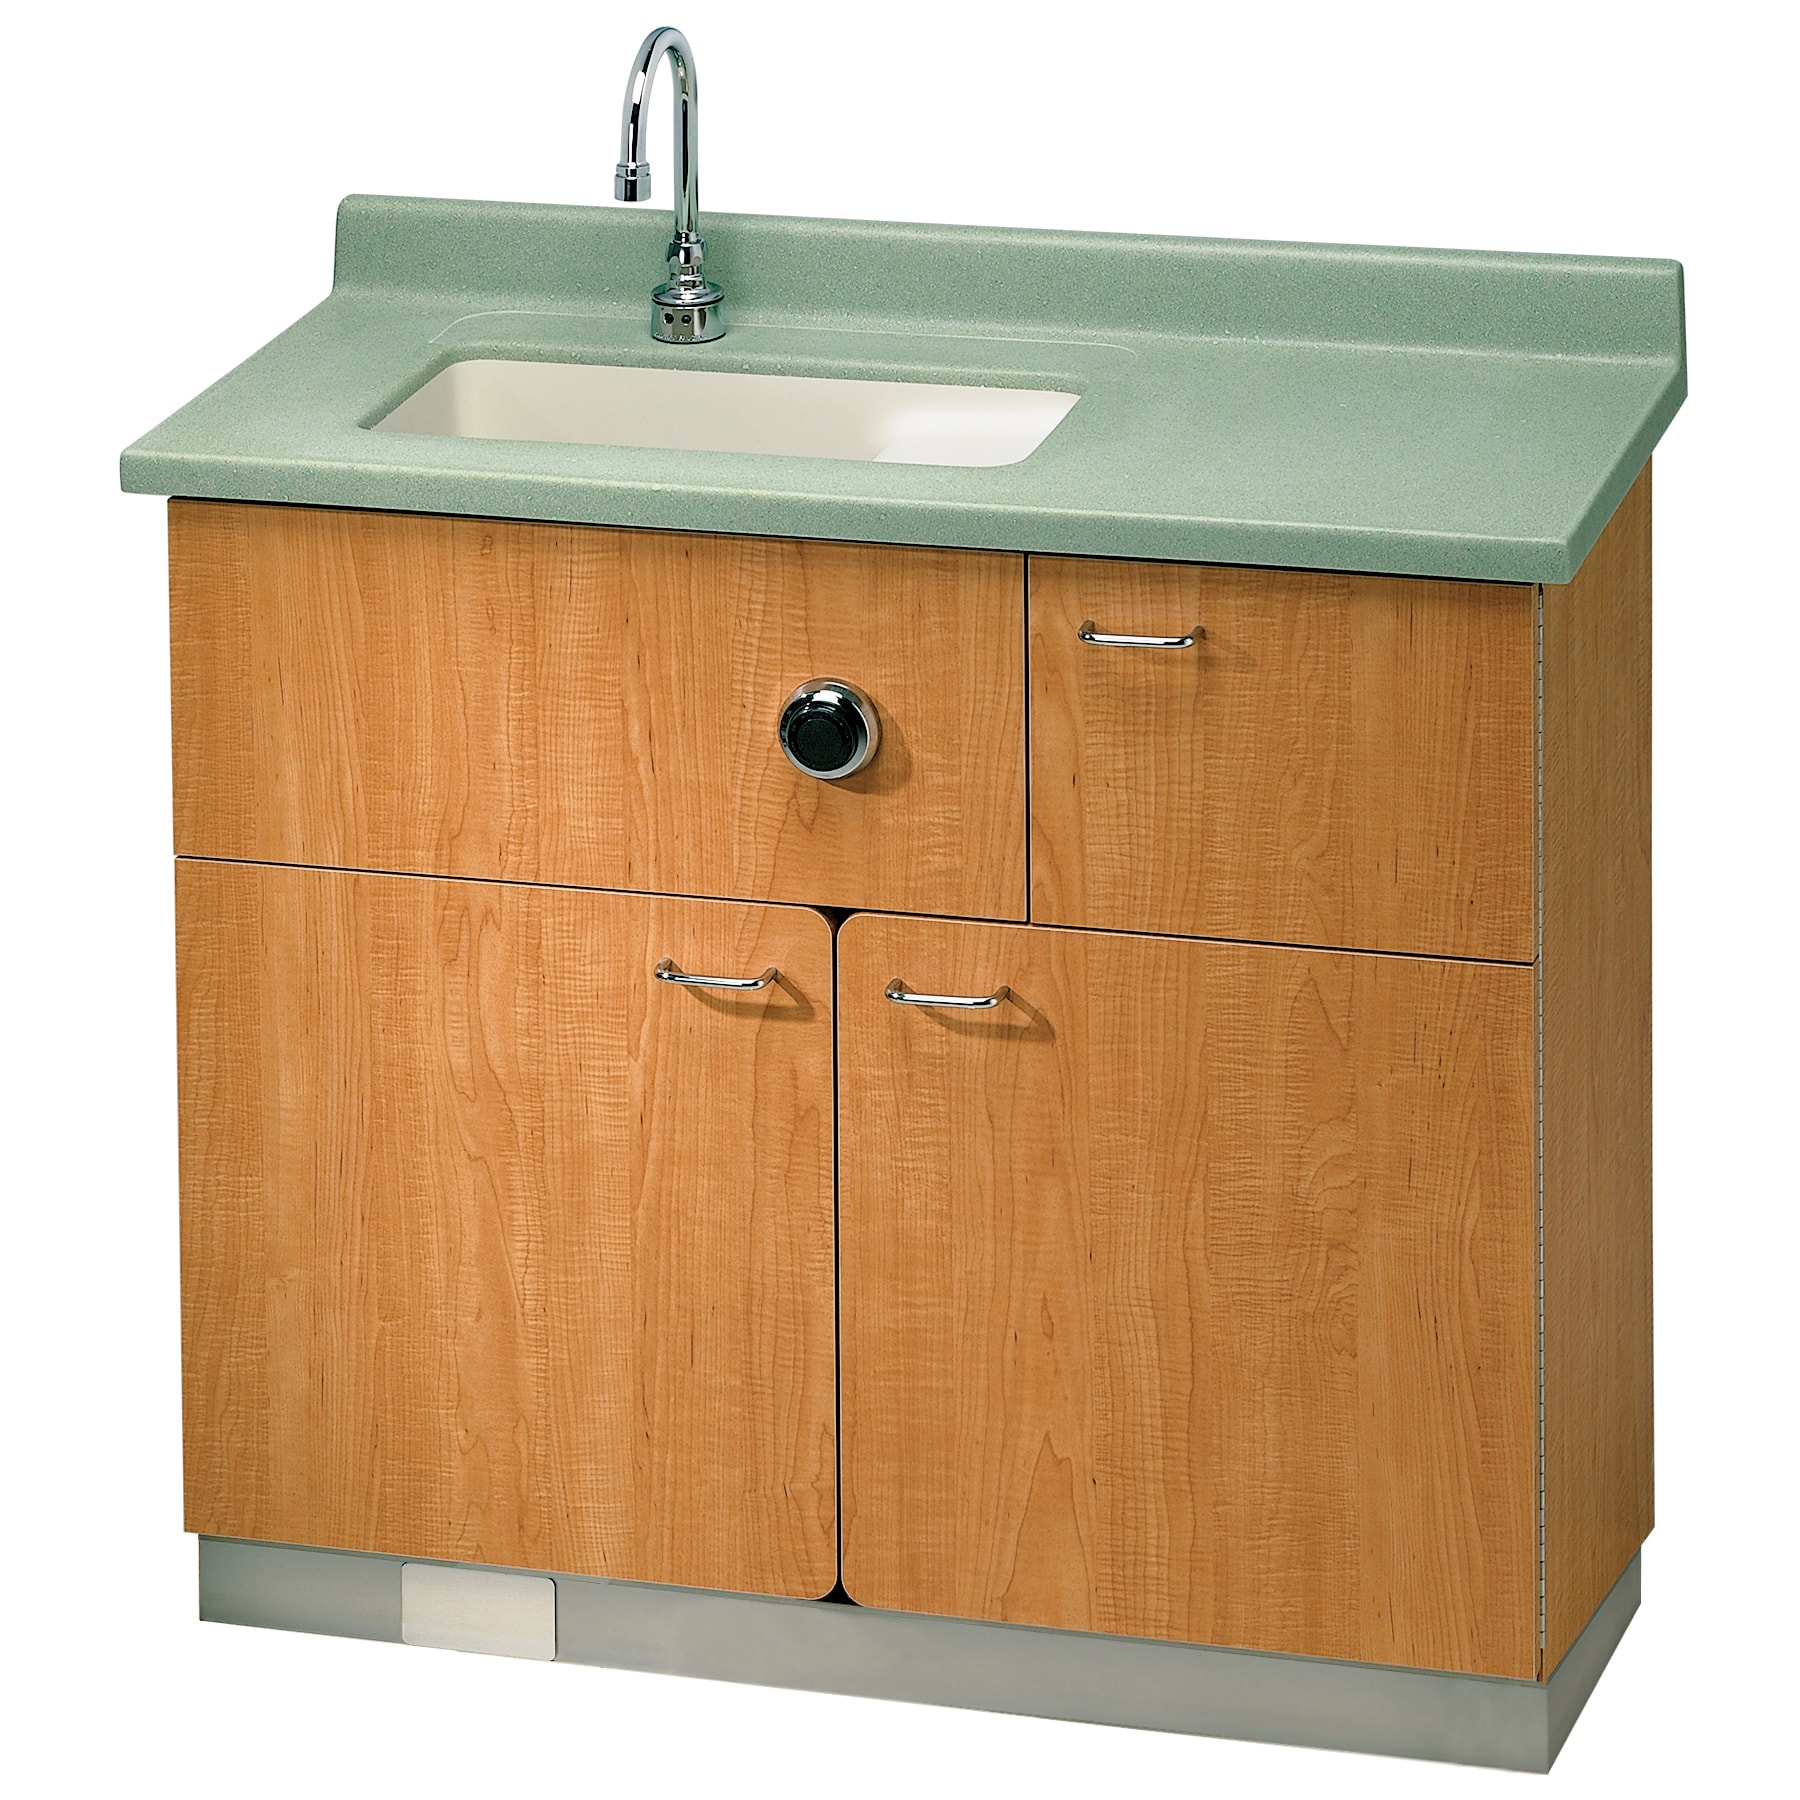 Lavatory Swing Out Water Closet Comby Bradley Corporation